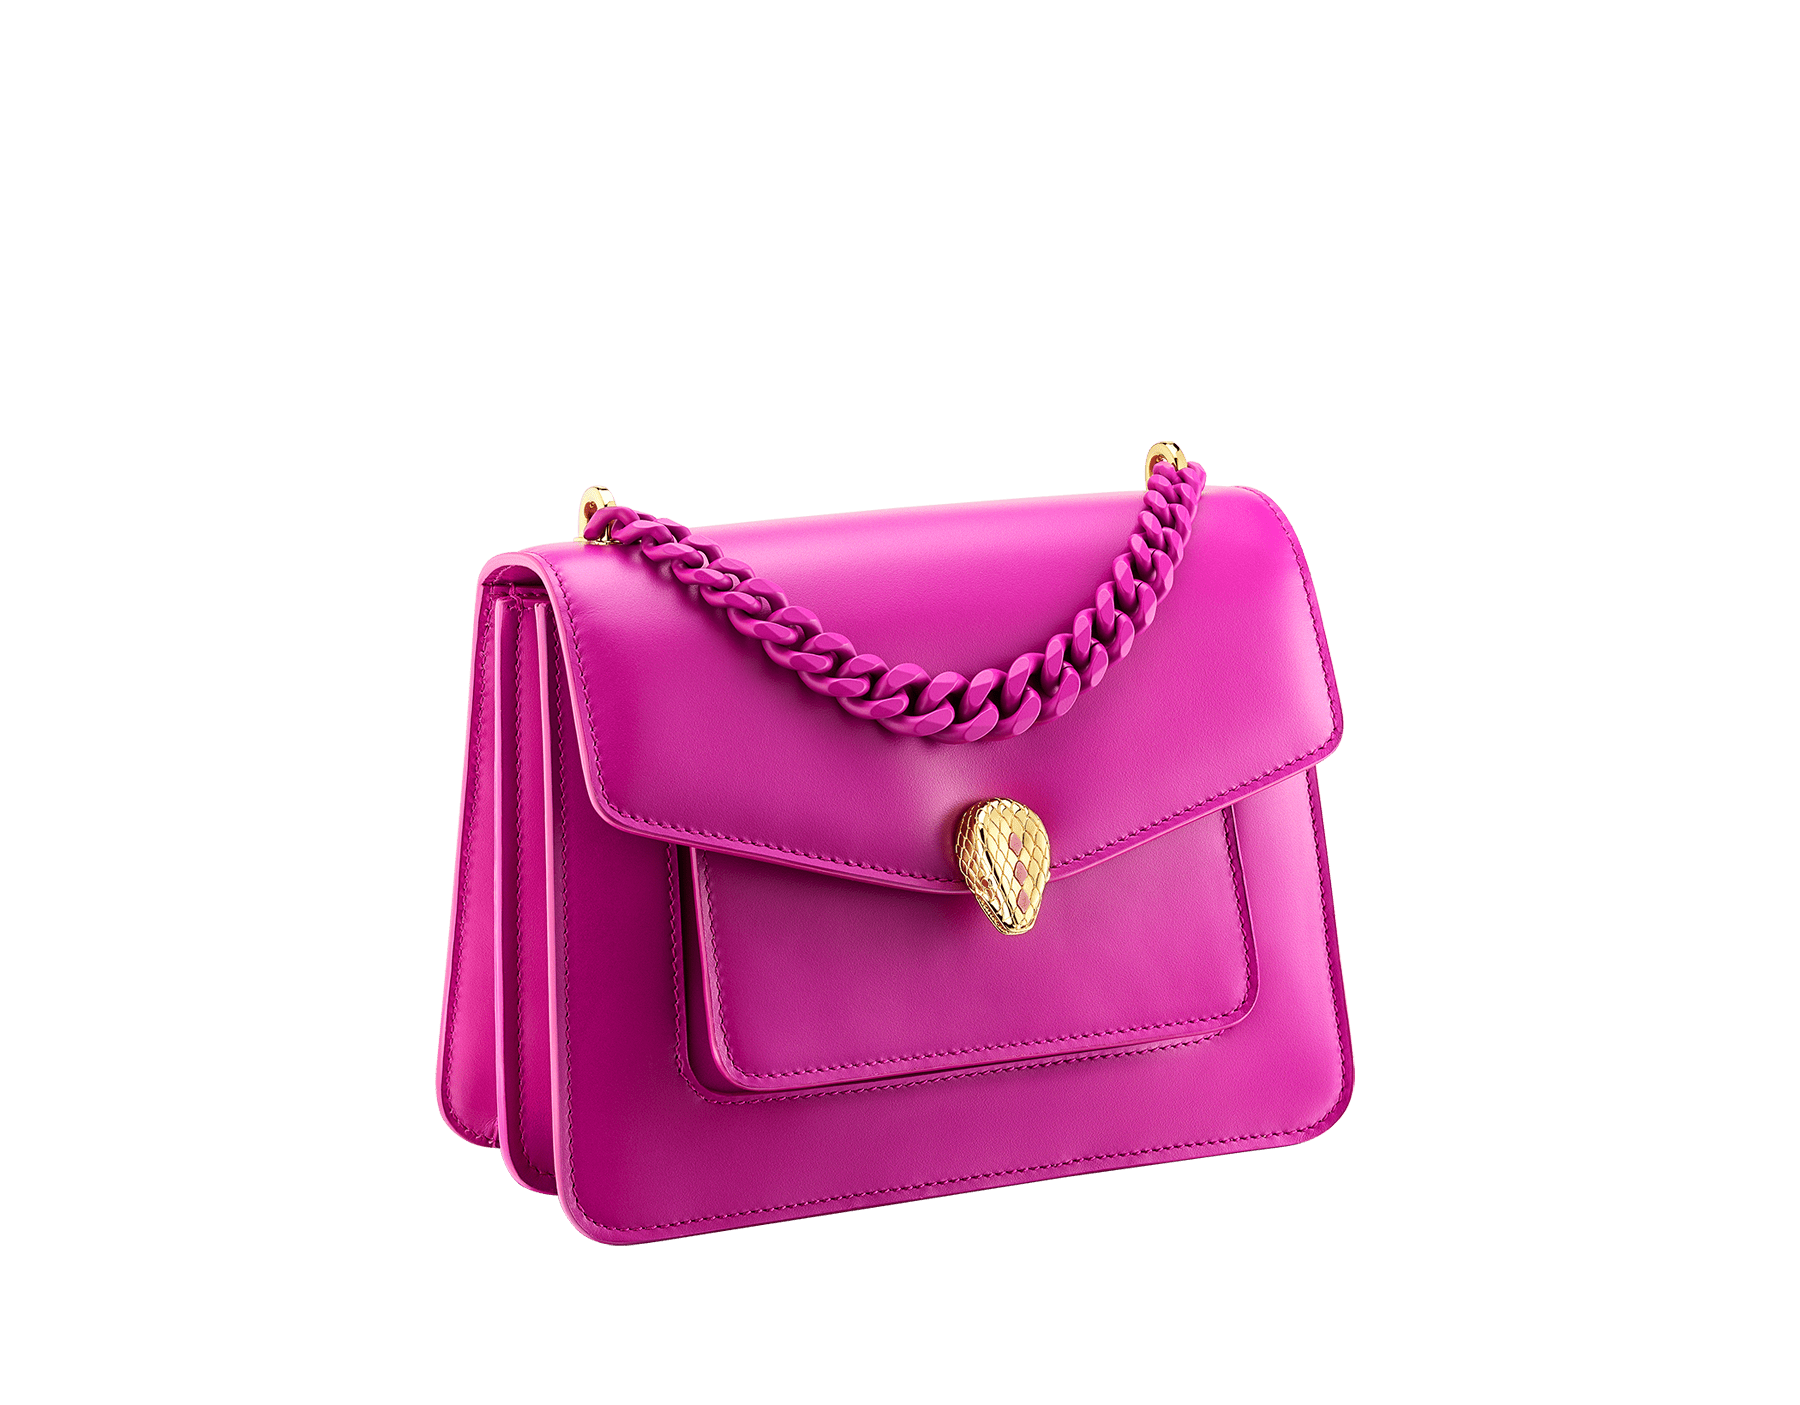 """Serpenti Forever"" small maxi chain crossbody bag in Magenta Spinel purple nappa leather, with Roman Garnet Bordeaux nappa leather inner lining. New Serpenti head closure in gold-plated brass, finished with small purple rhodonite scales in the middle and red enamel eyes. 1134-MCN image 2"